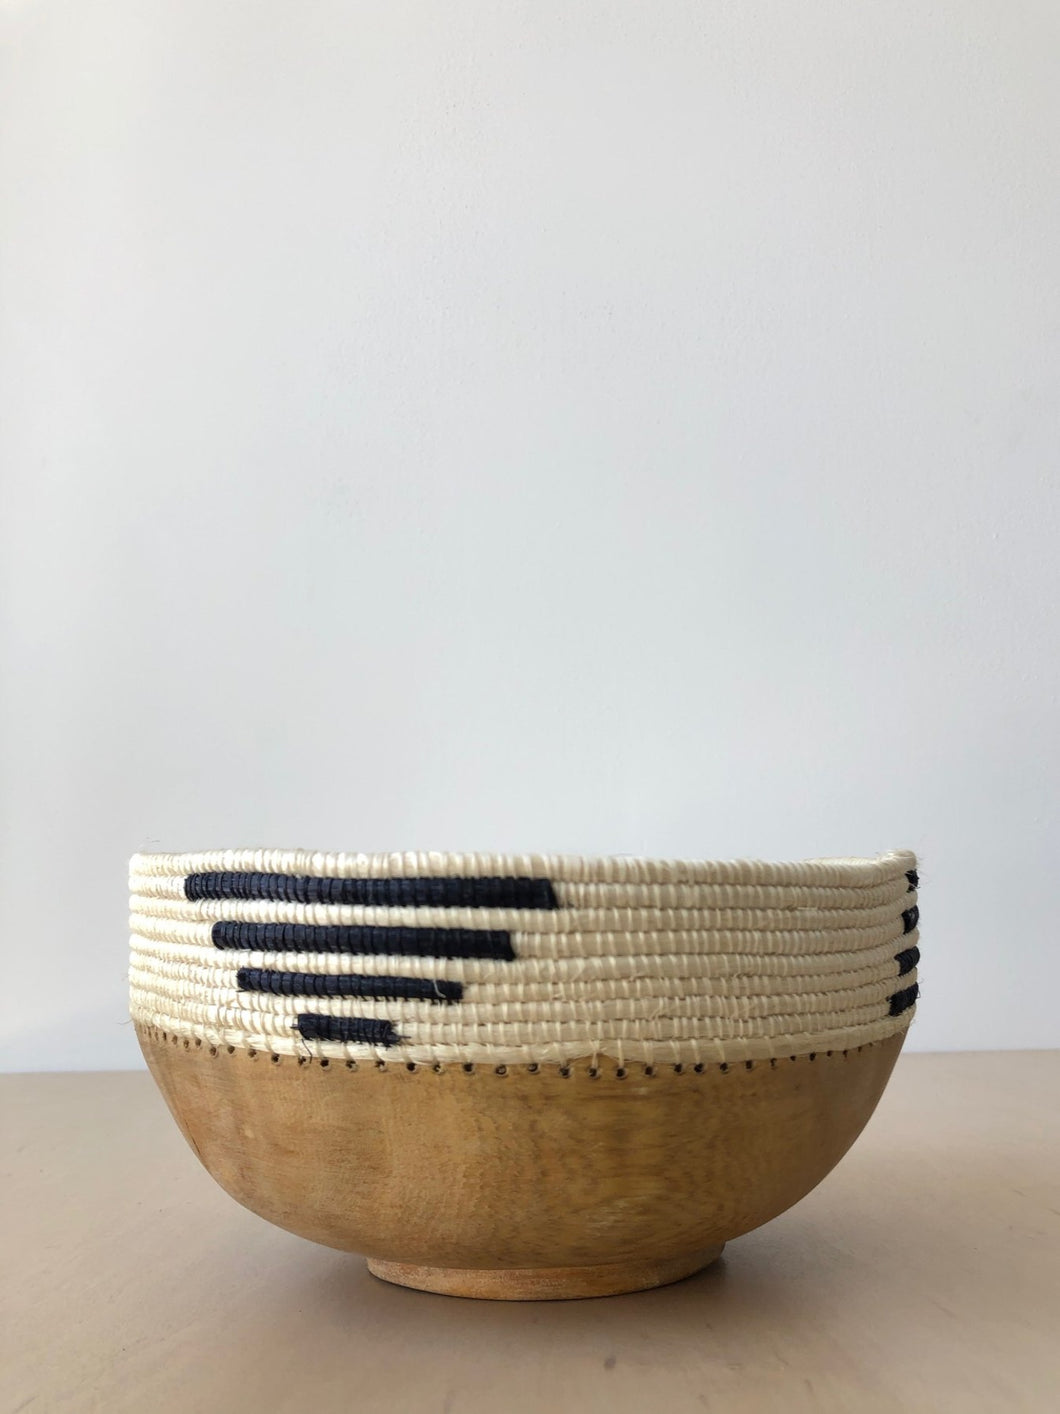 Black and White Patterned Wood Bowl